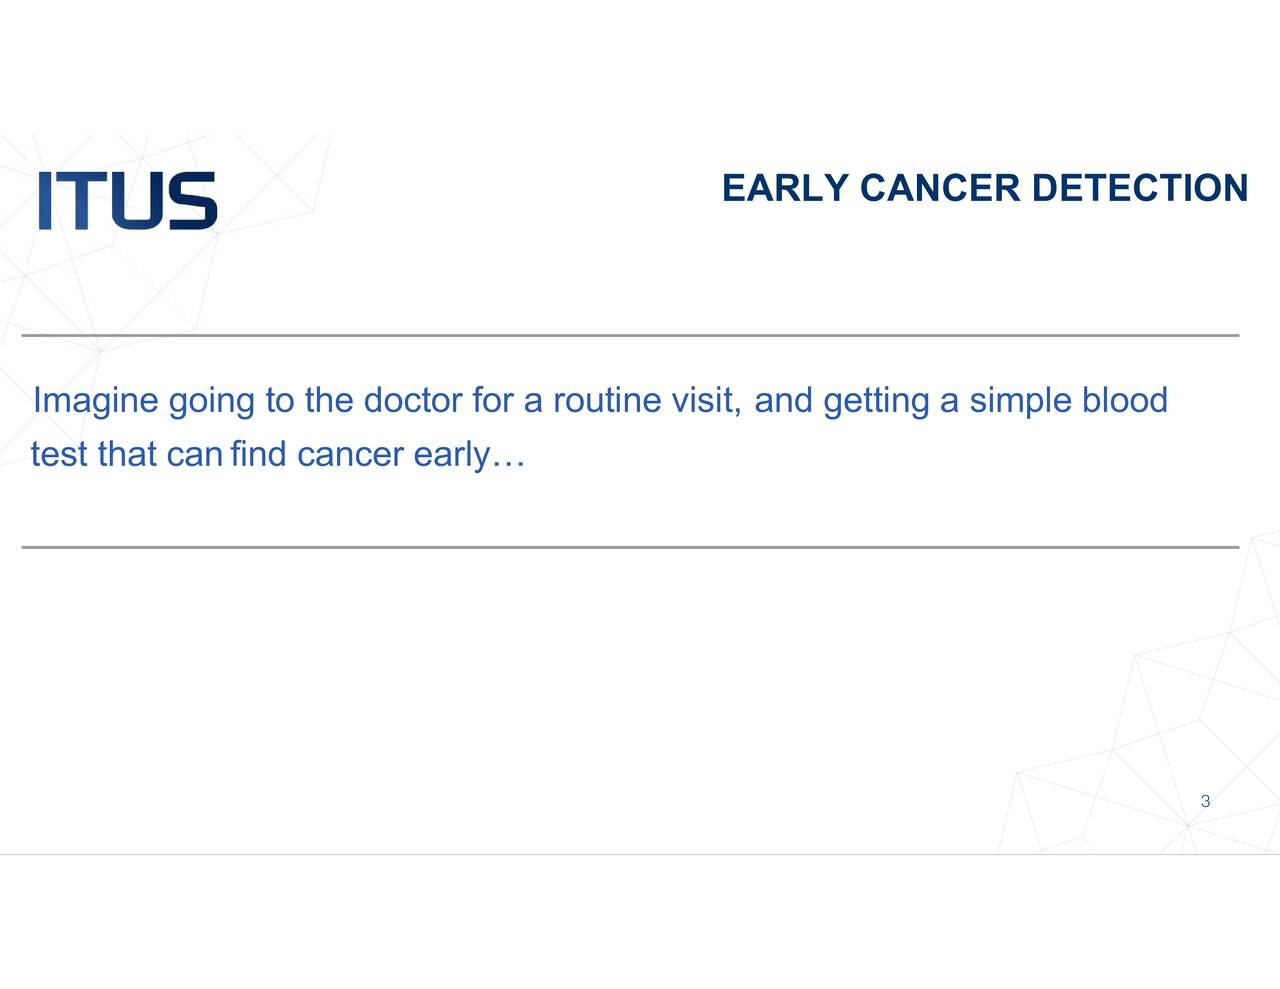 EARLY CANCER DETECTION find cancer early Imatest that can the doctor for a routine visit, and getting a simple blood